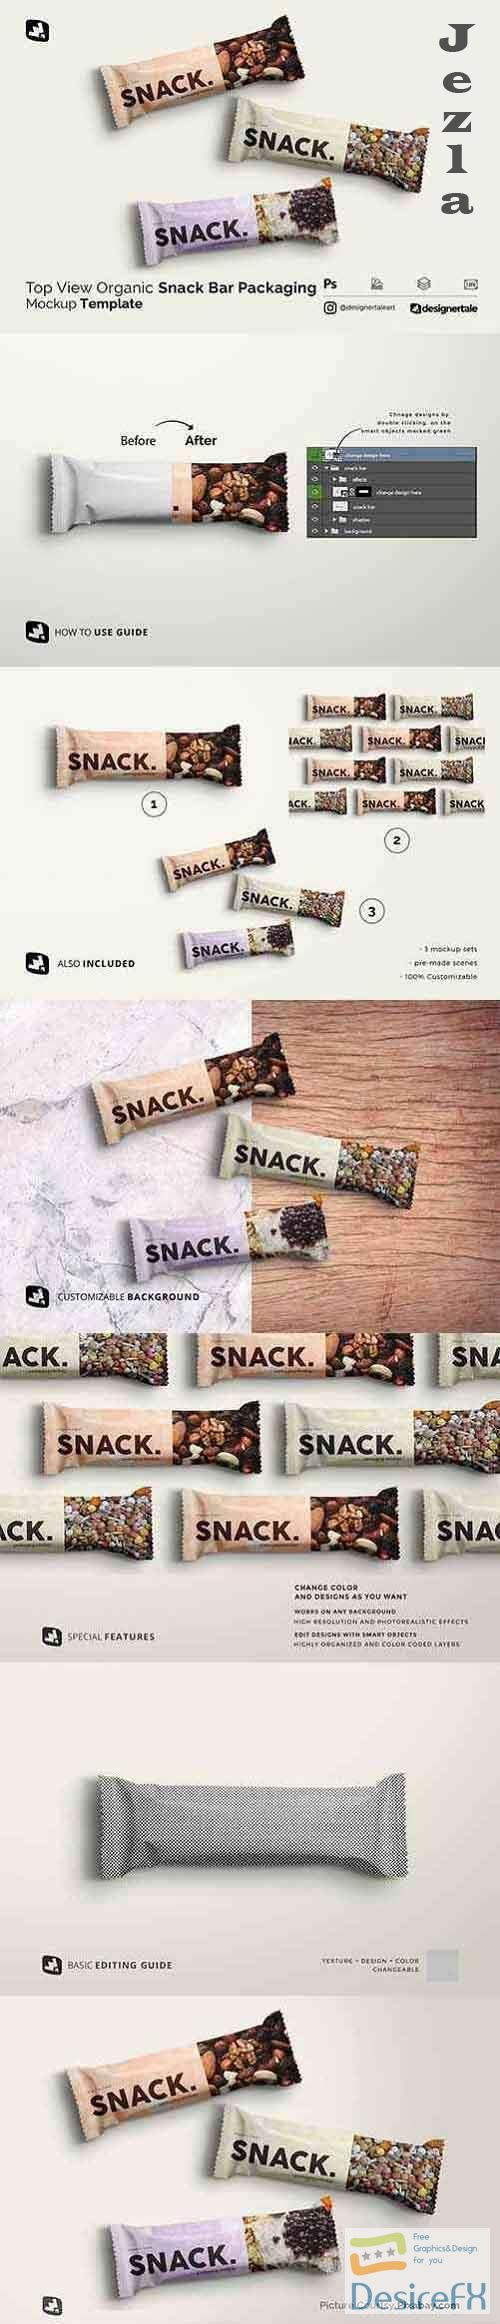 Organic Snack Bar Packaging Mockup - 4836461